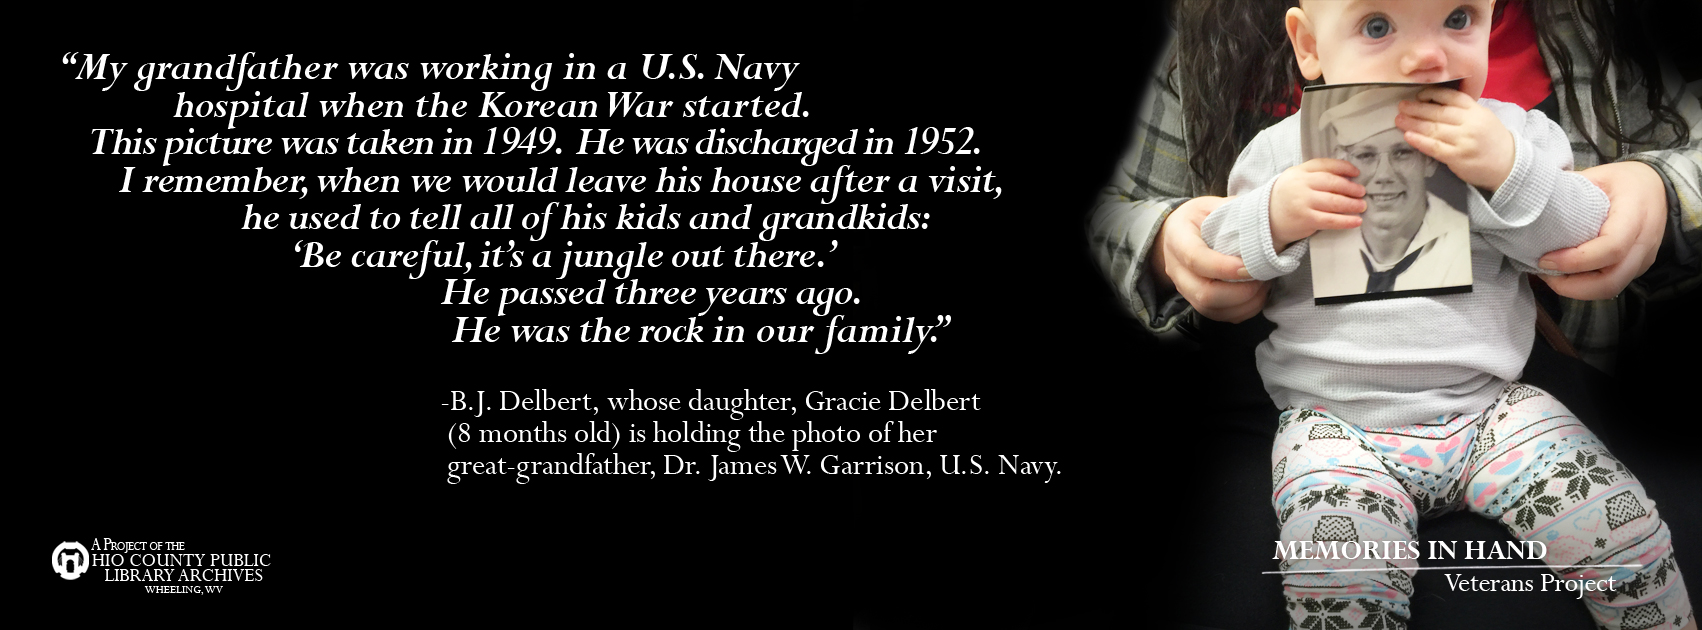 Dr. James W. Garrison, U.S. Navy, Korean War era